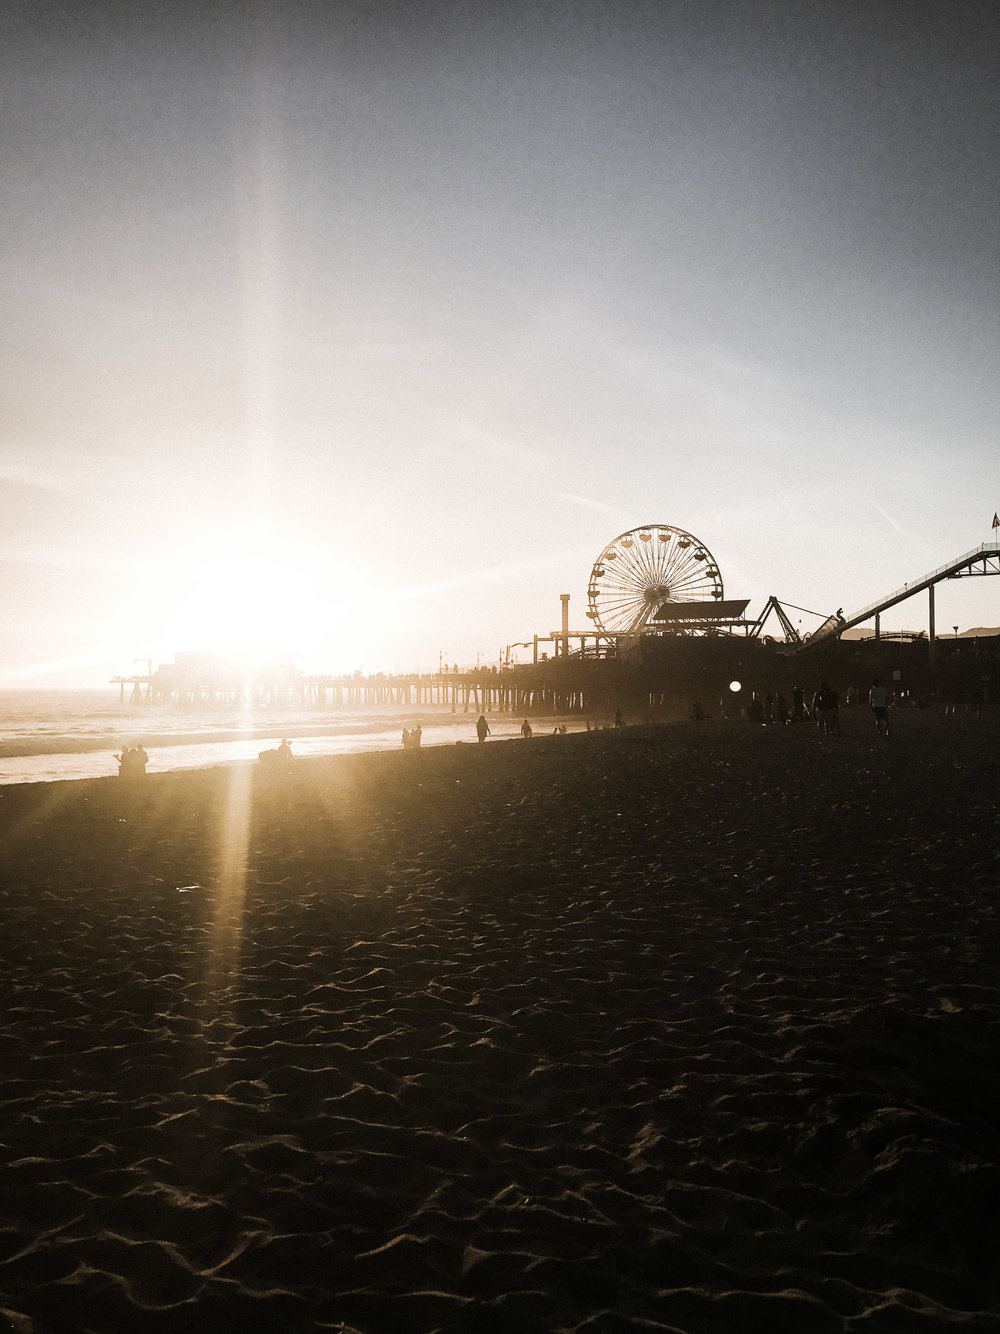 Santa-Monica-pier-at-sunset.jpg